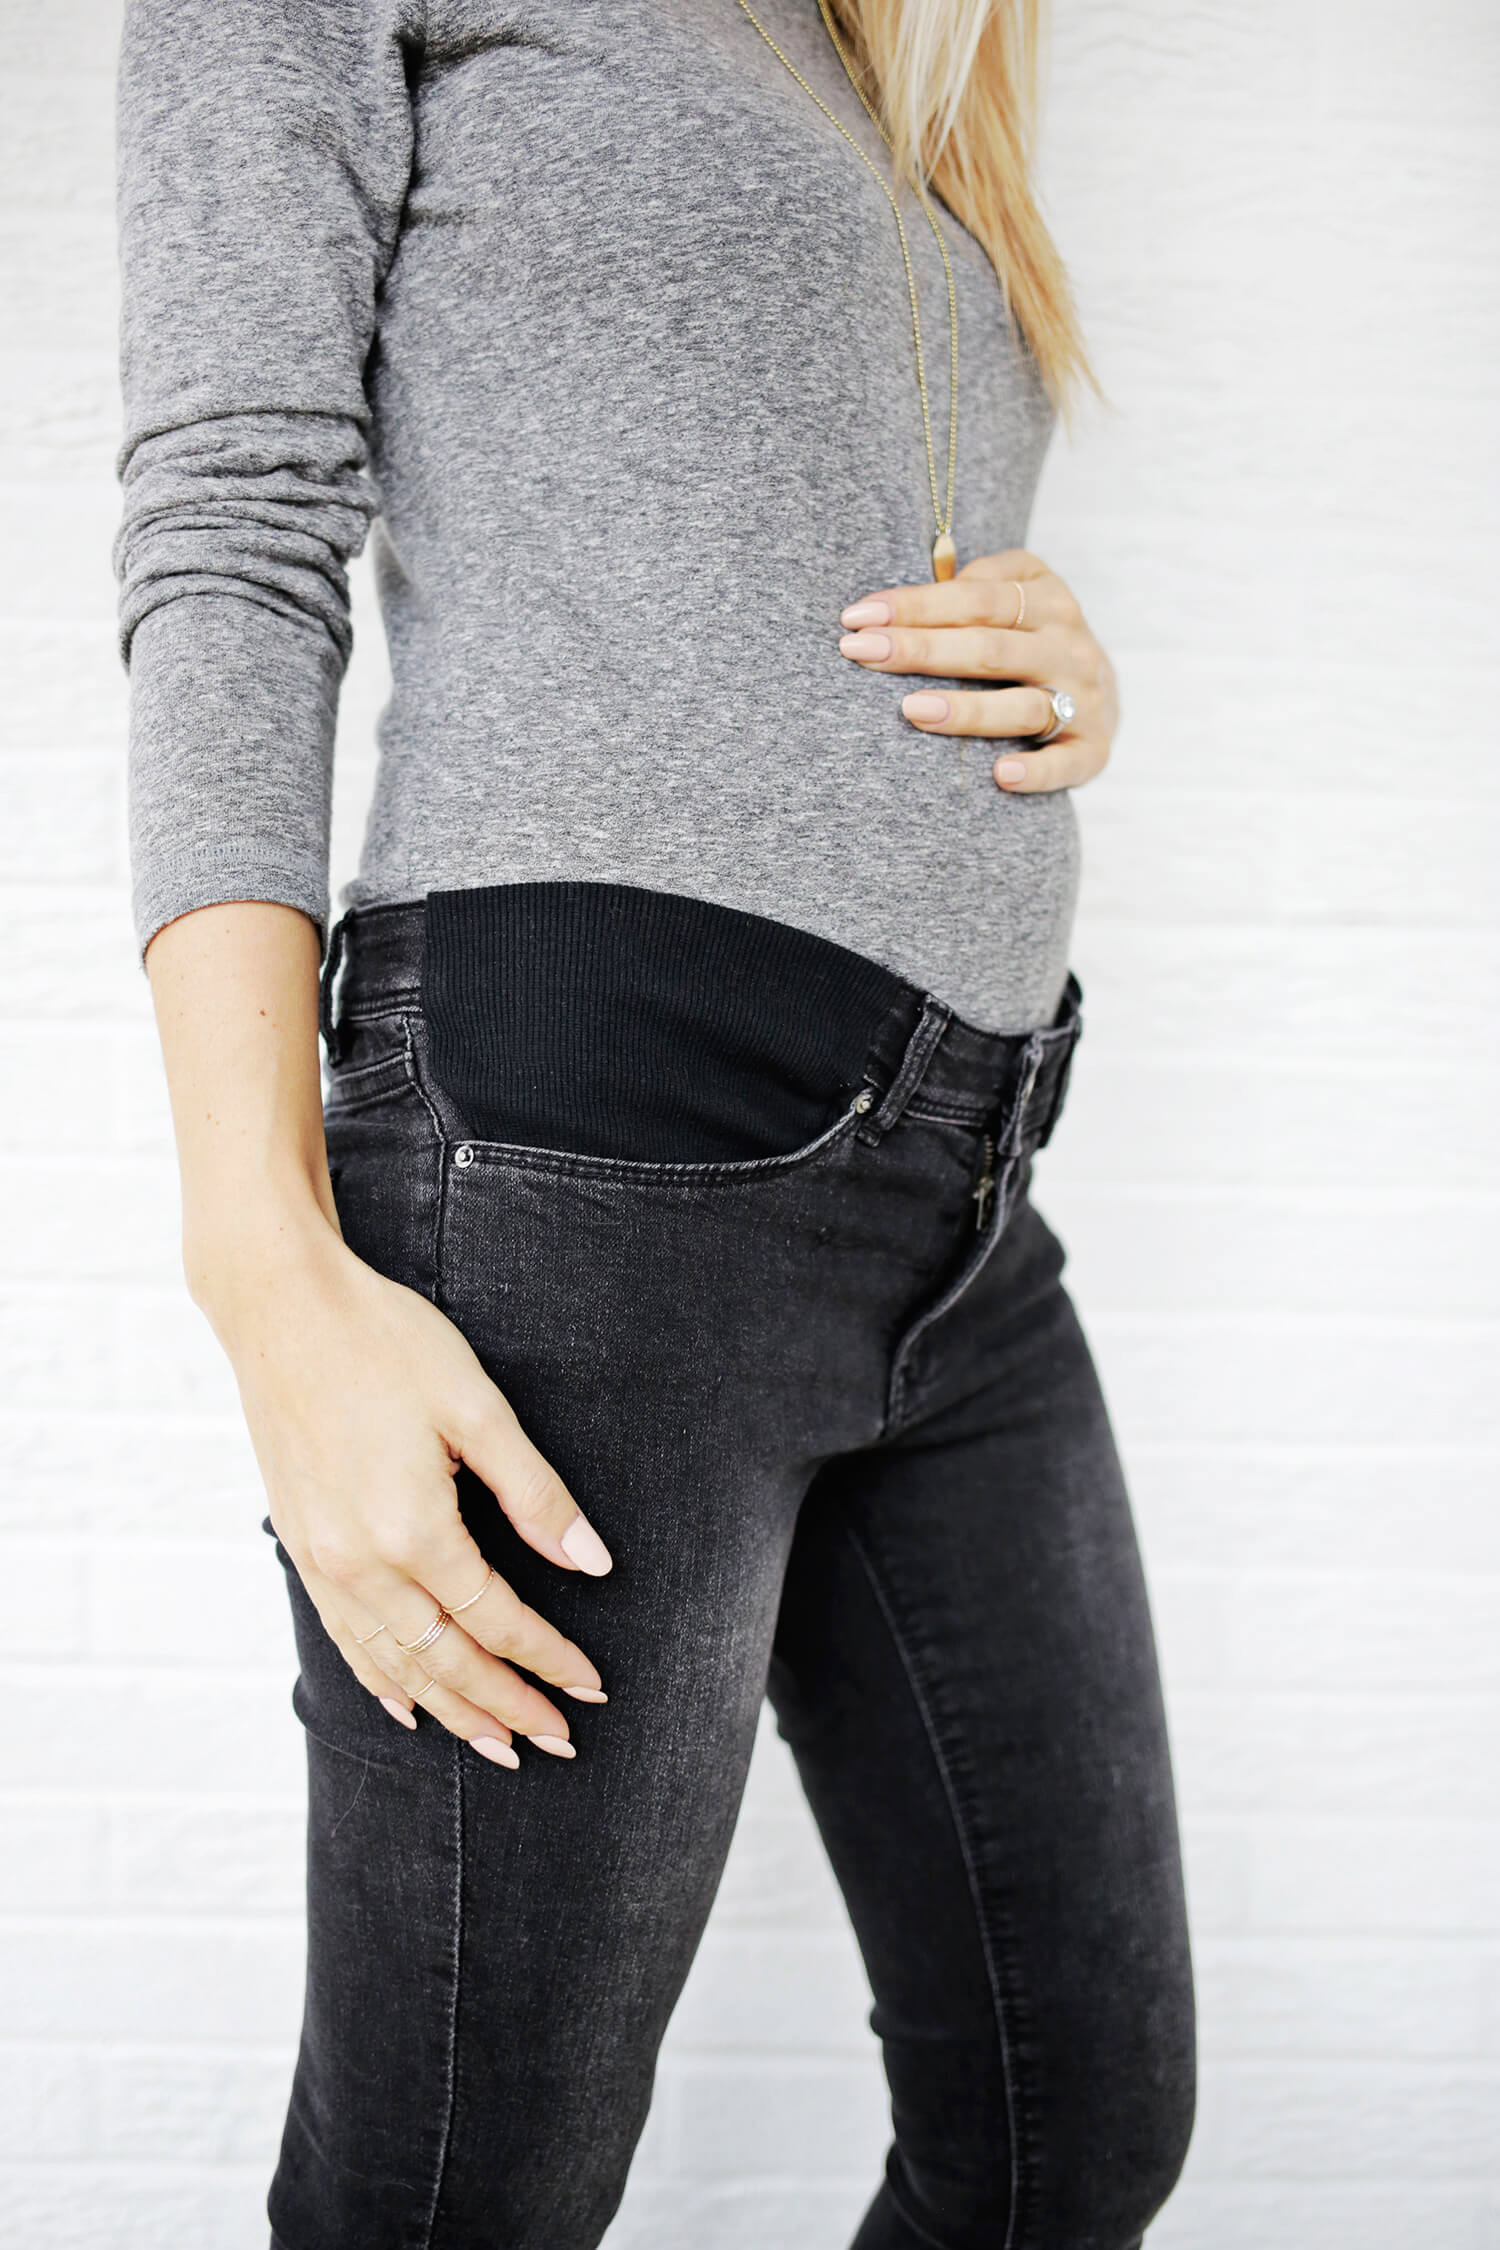 bbde63643b850 Make Your Own Maternity Jeans! - A Beautiful Mess